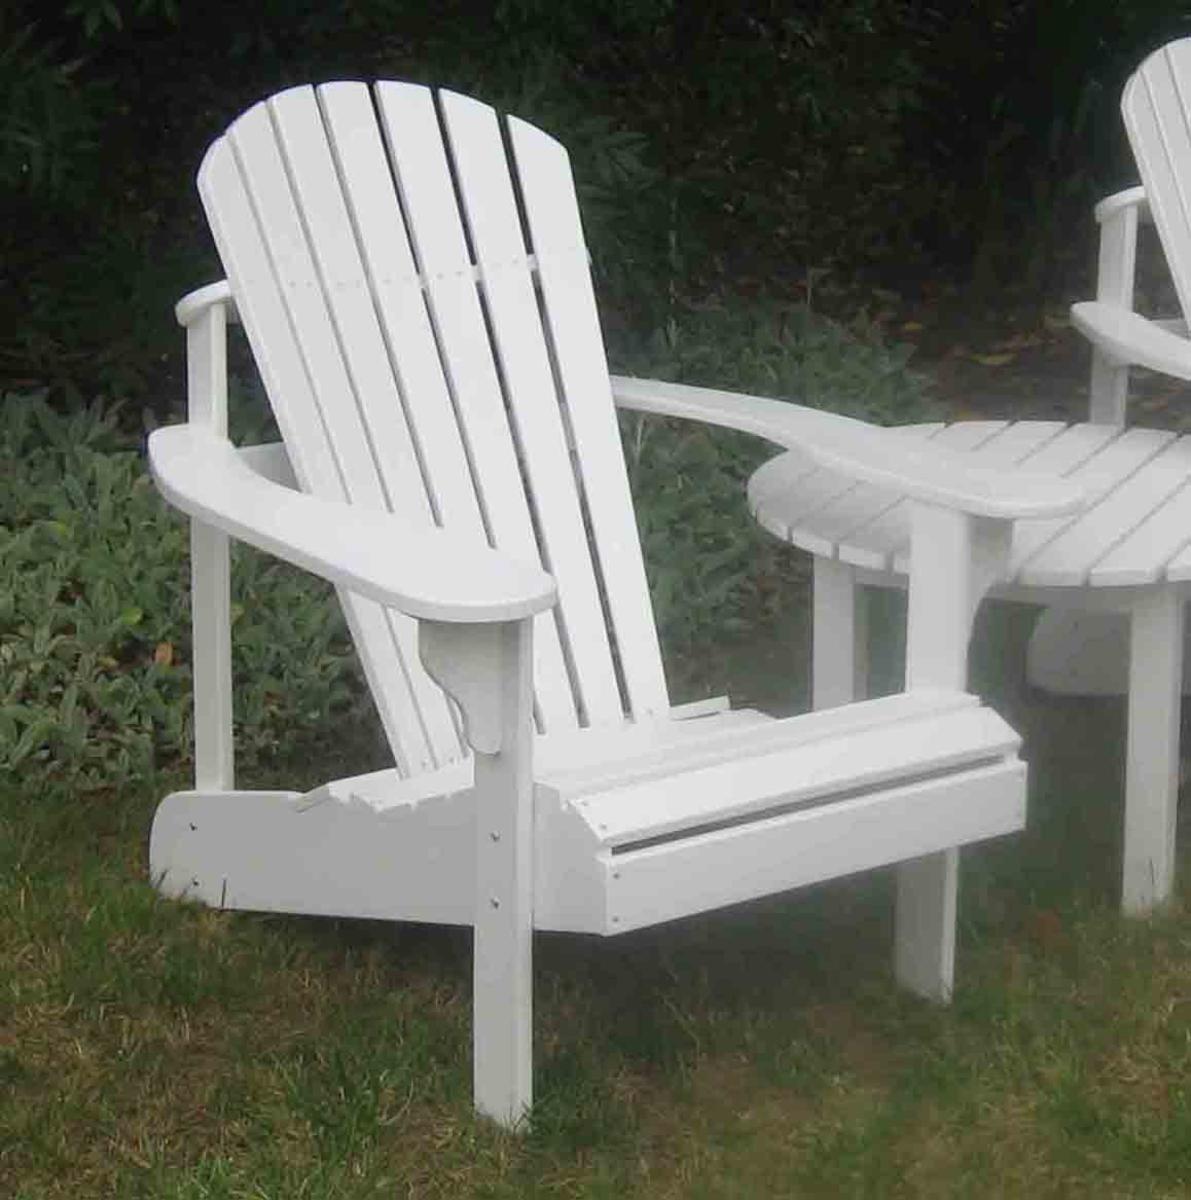 chair king outdoor furniture photo albums of